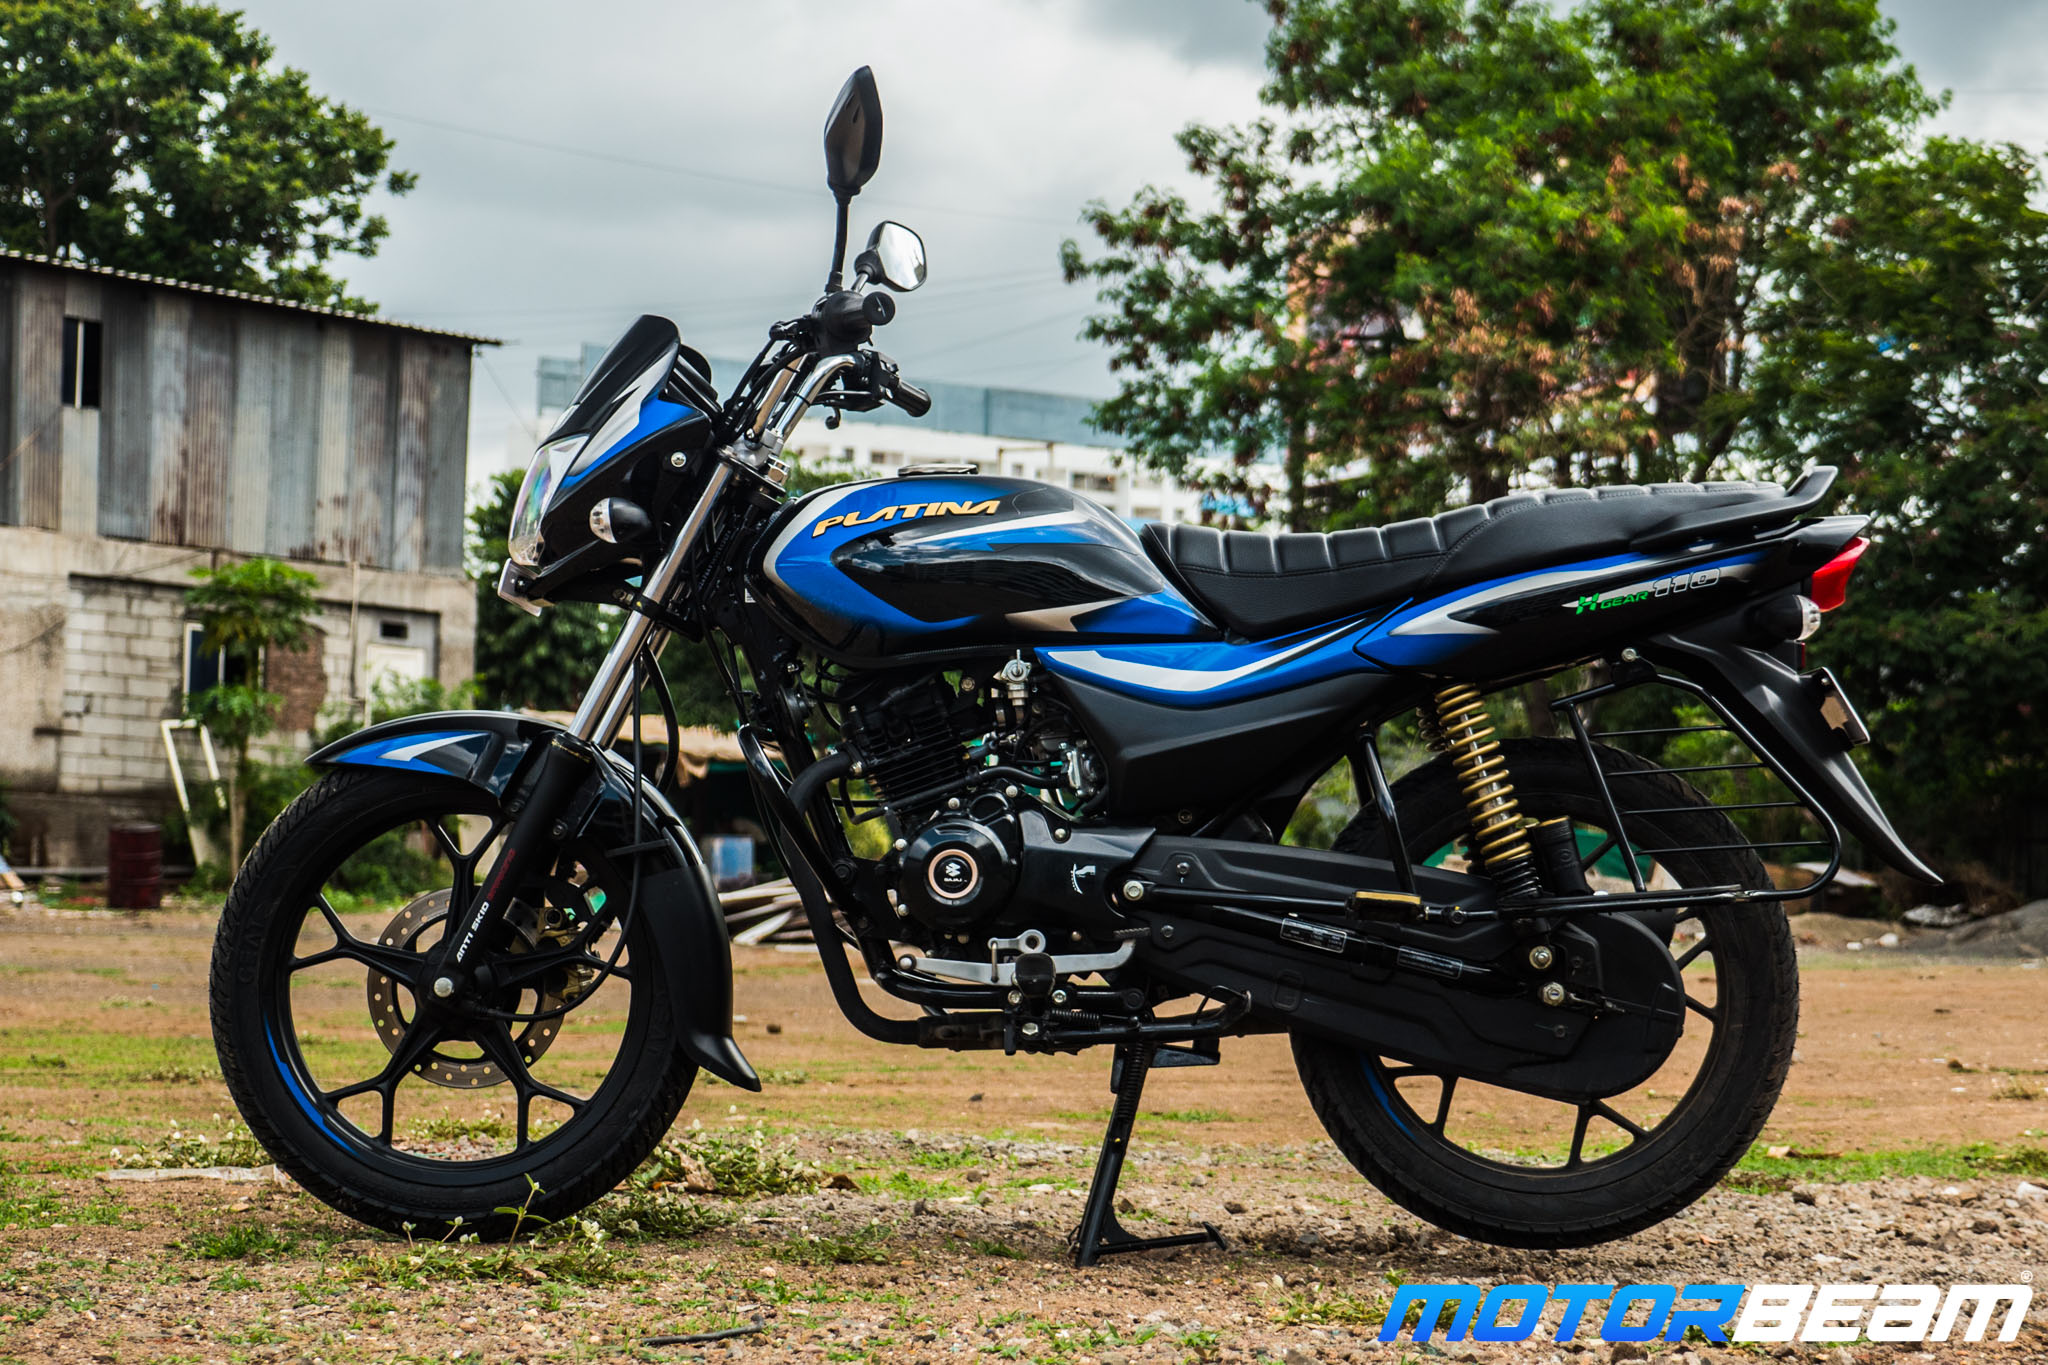 Bajaj Platina 110 H-Gear Price, Mileage, Specifications, Colors, Top Speed and Service Schedule